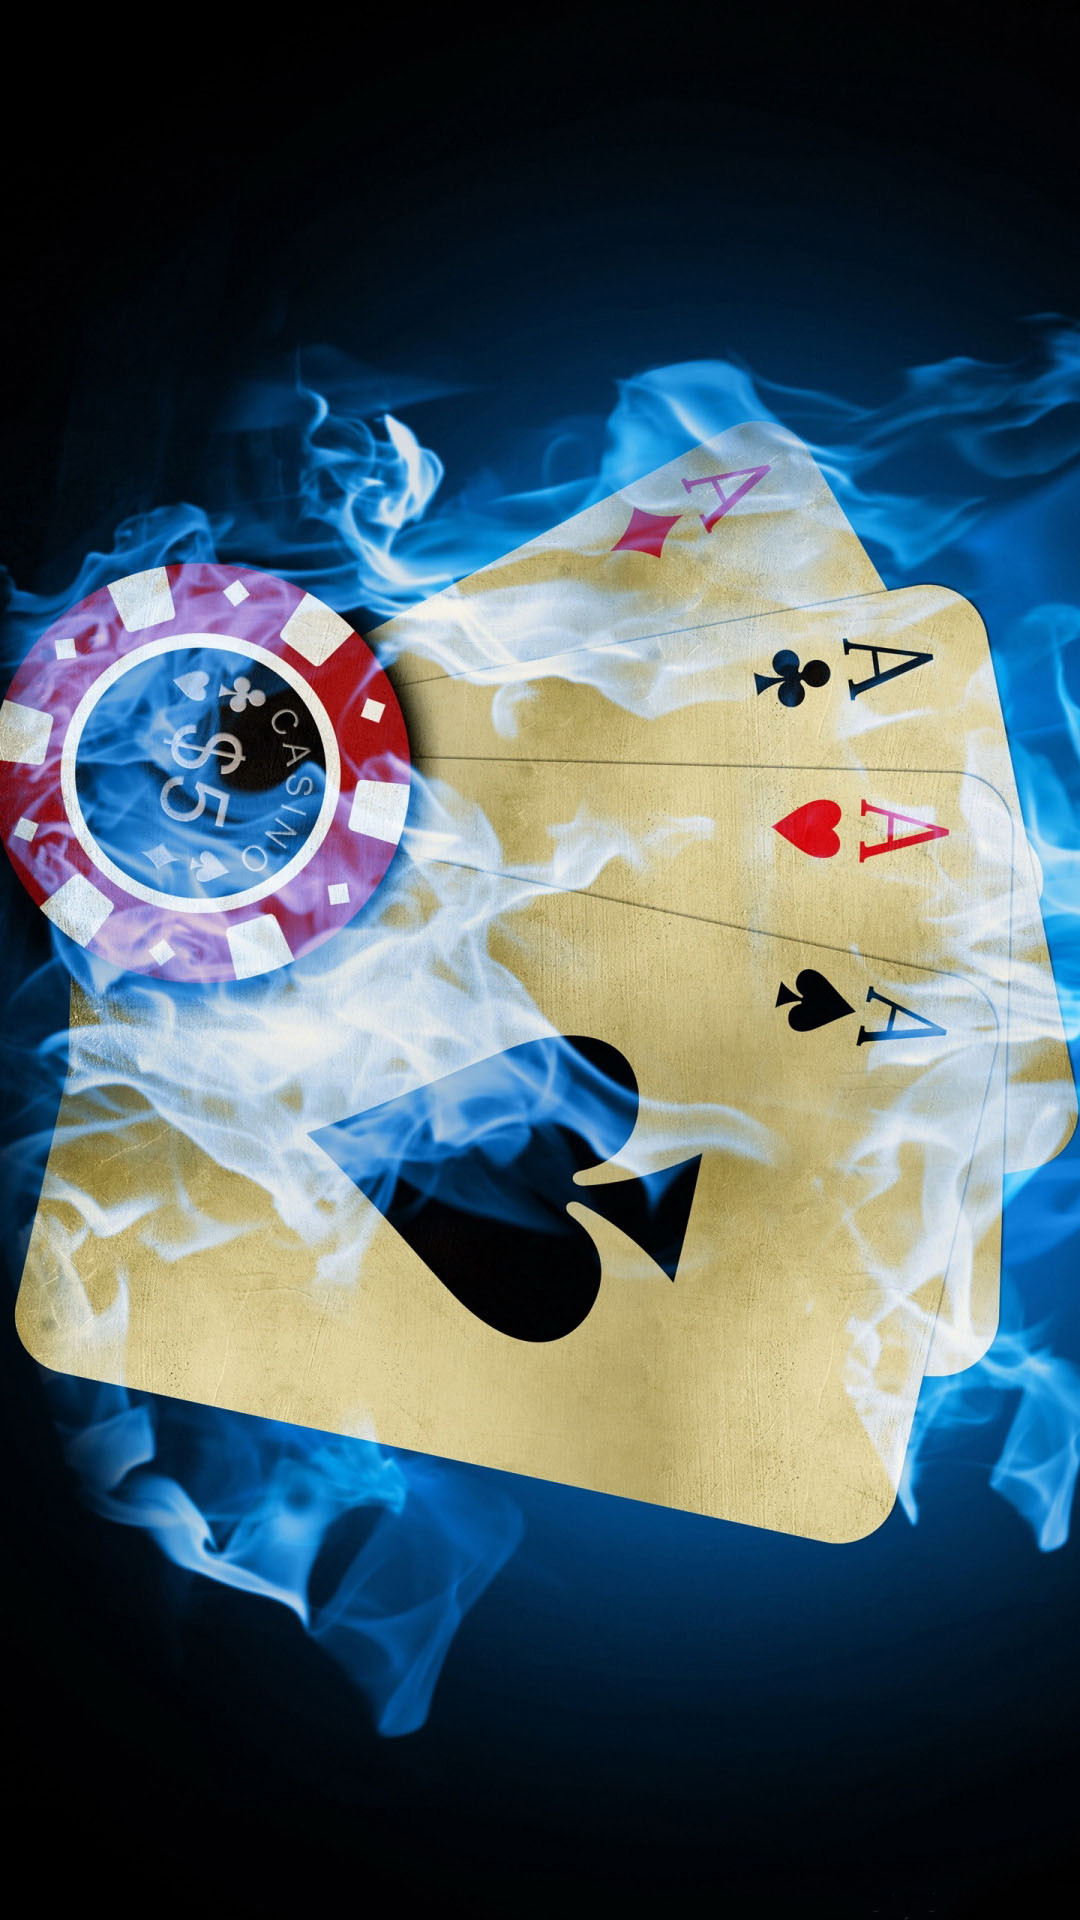 Four Aces Poker Burning Blue Fire Android Wallpaper …